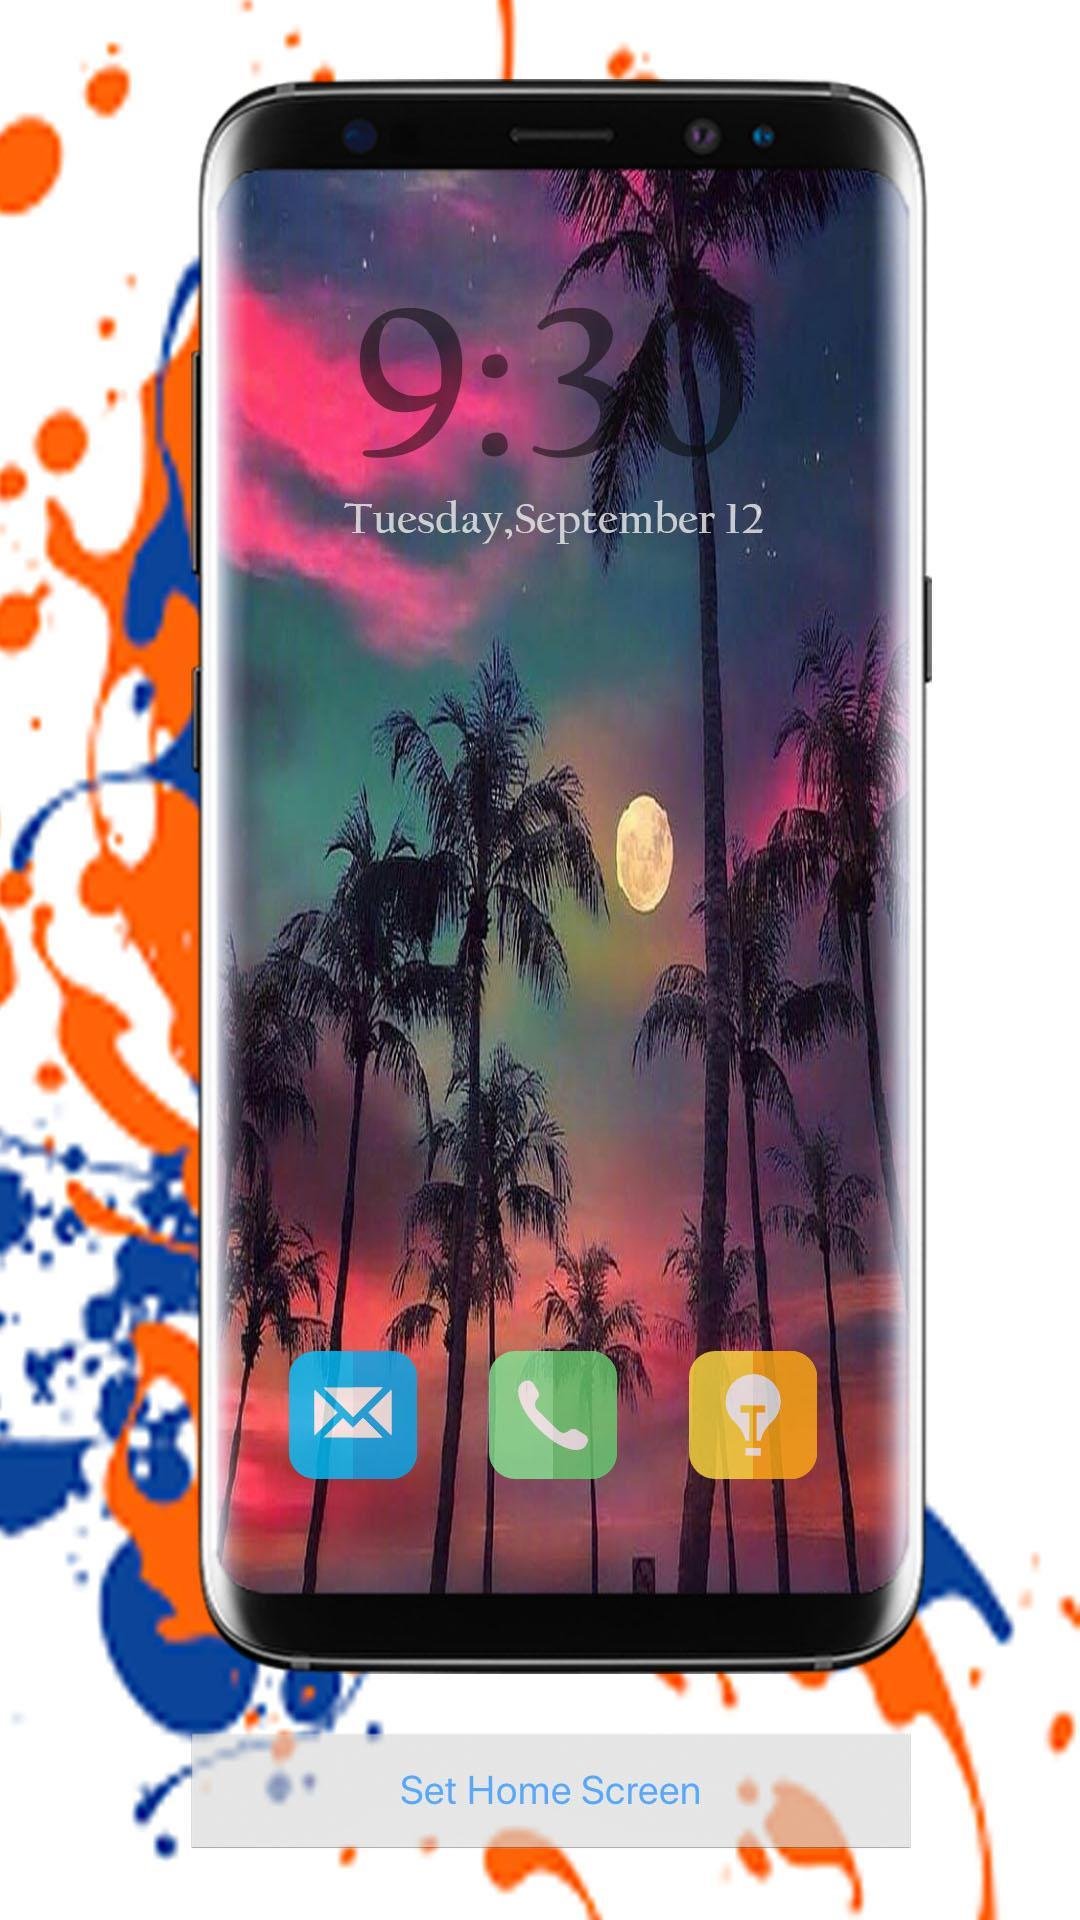 Beach Wallpaper New For Android APK Download